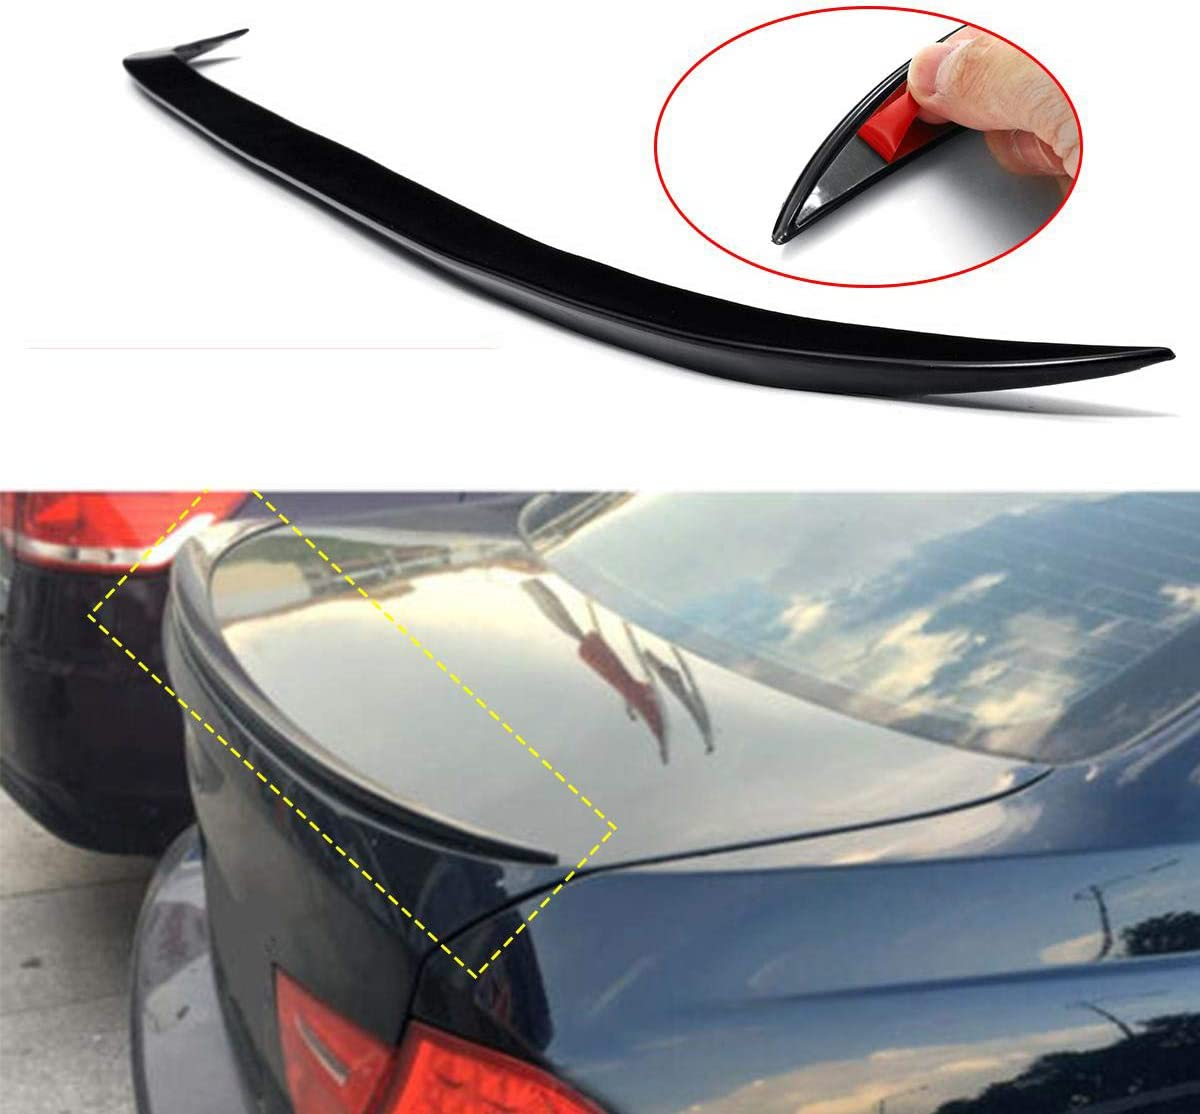 Black Saloon Rear Boot Lip Spoiler Tail Wing M3 Style for BMW 3 Series E90 4 Door 2005-12 Rear Roof Spoiler Trunk Lip